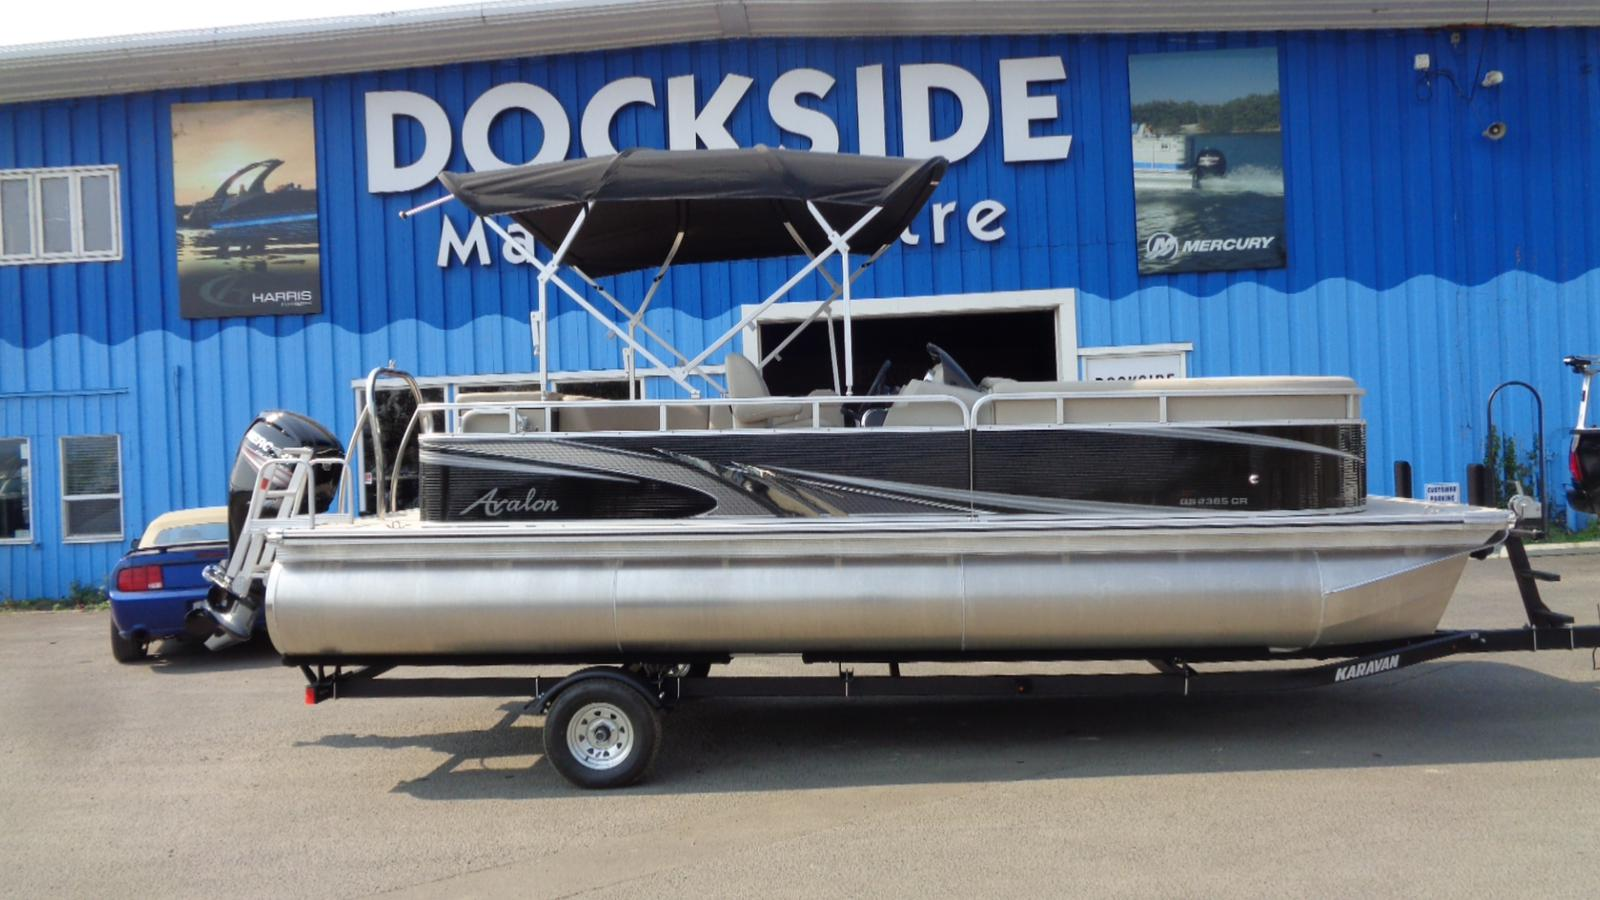 For Sale: 2018 Avalon 23 Gs Cruise 24ft<br/>Dockside Marine Centre, LTD.